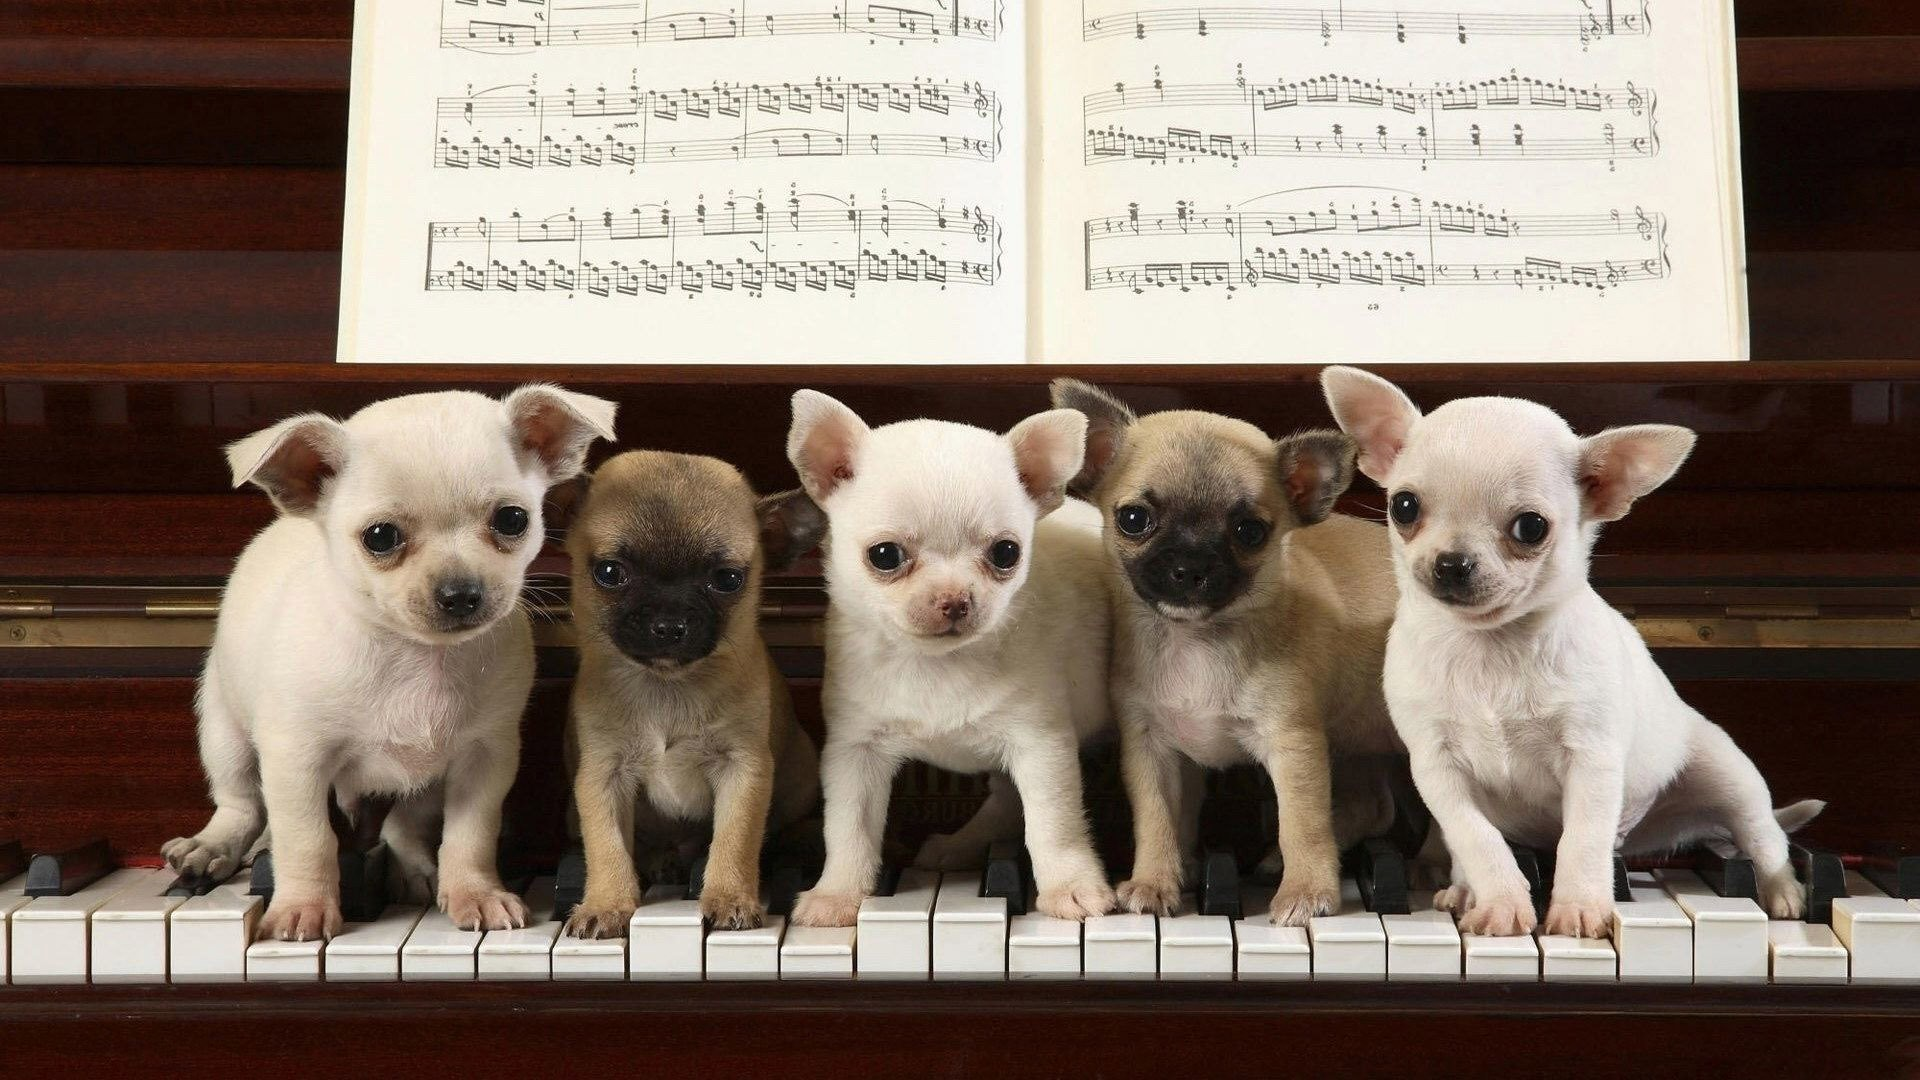 Res: 1920x1080, chihuahua puppies on the piano